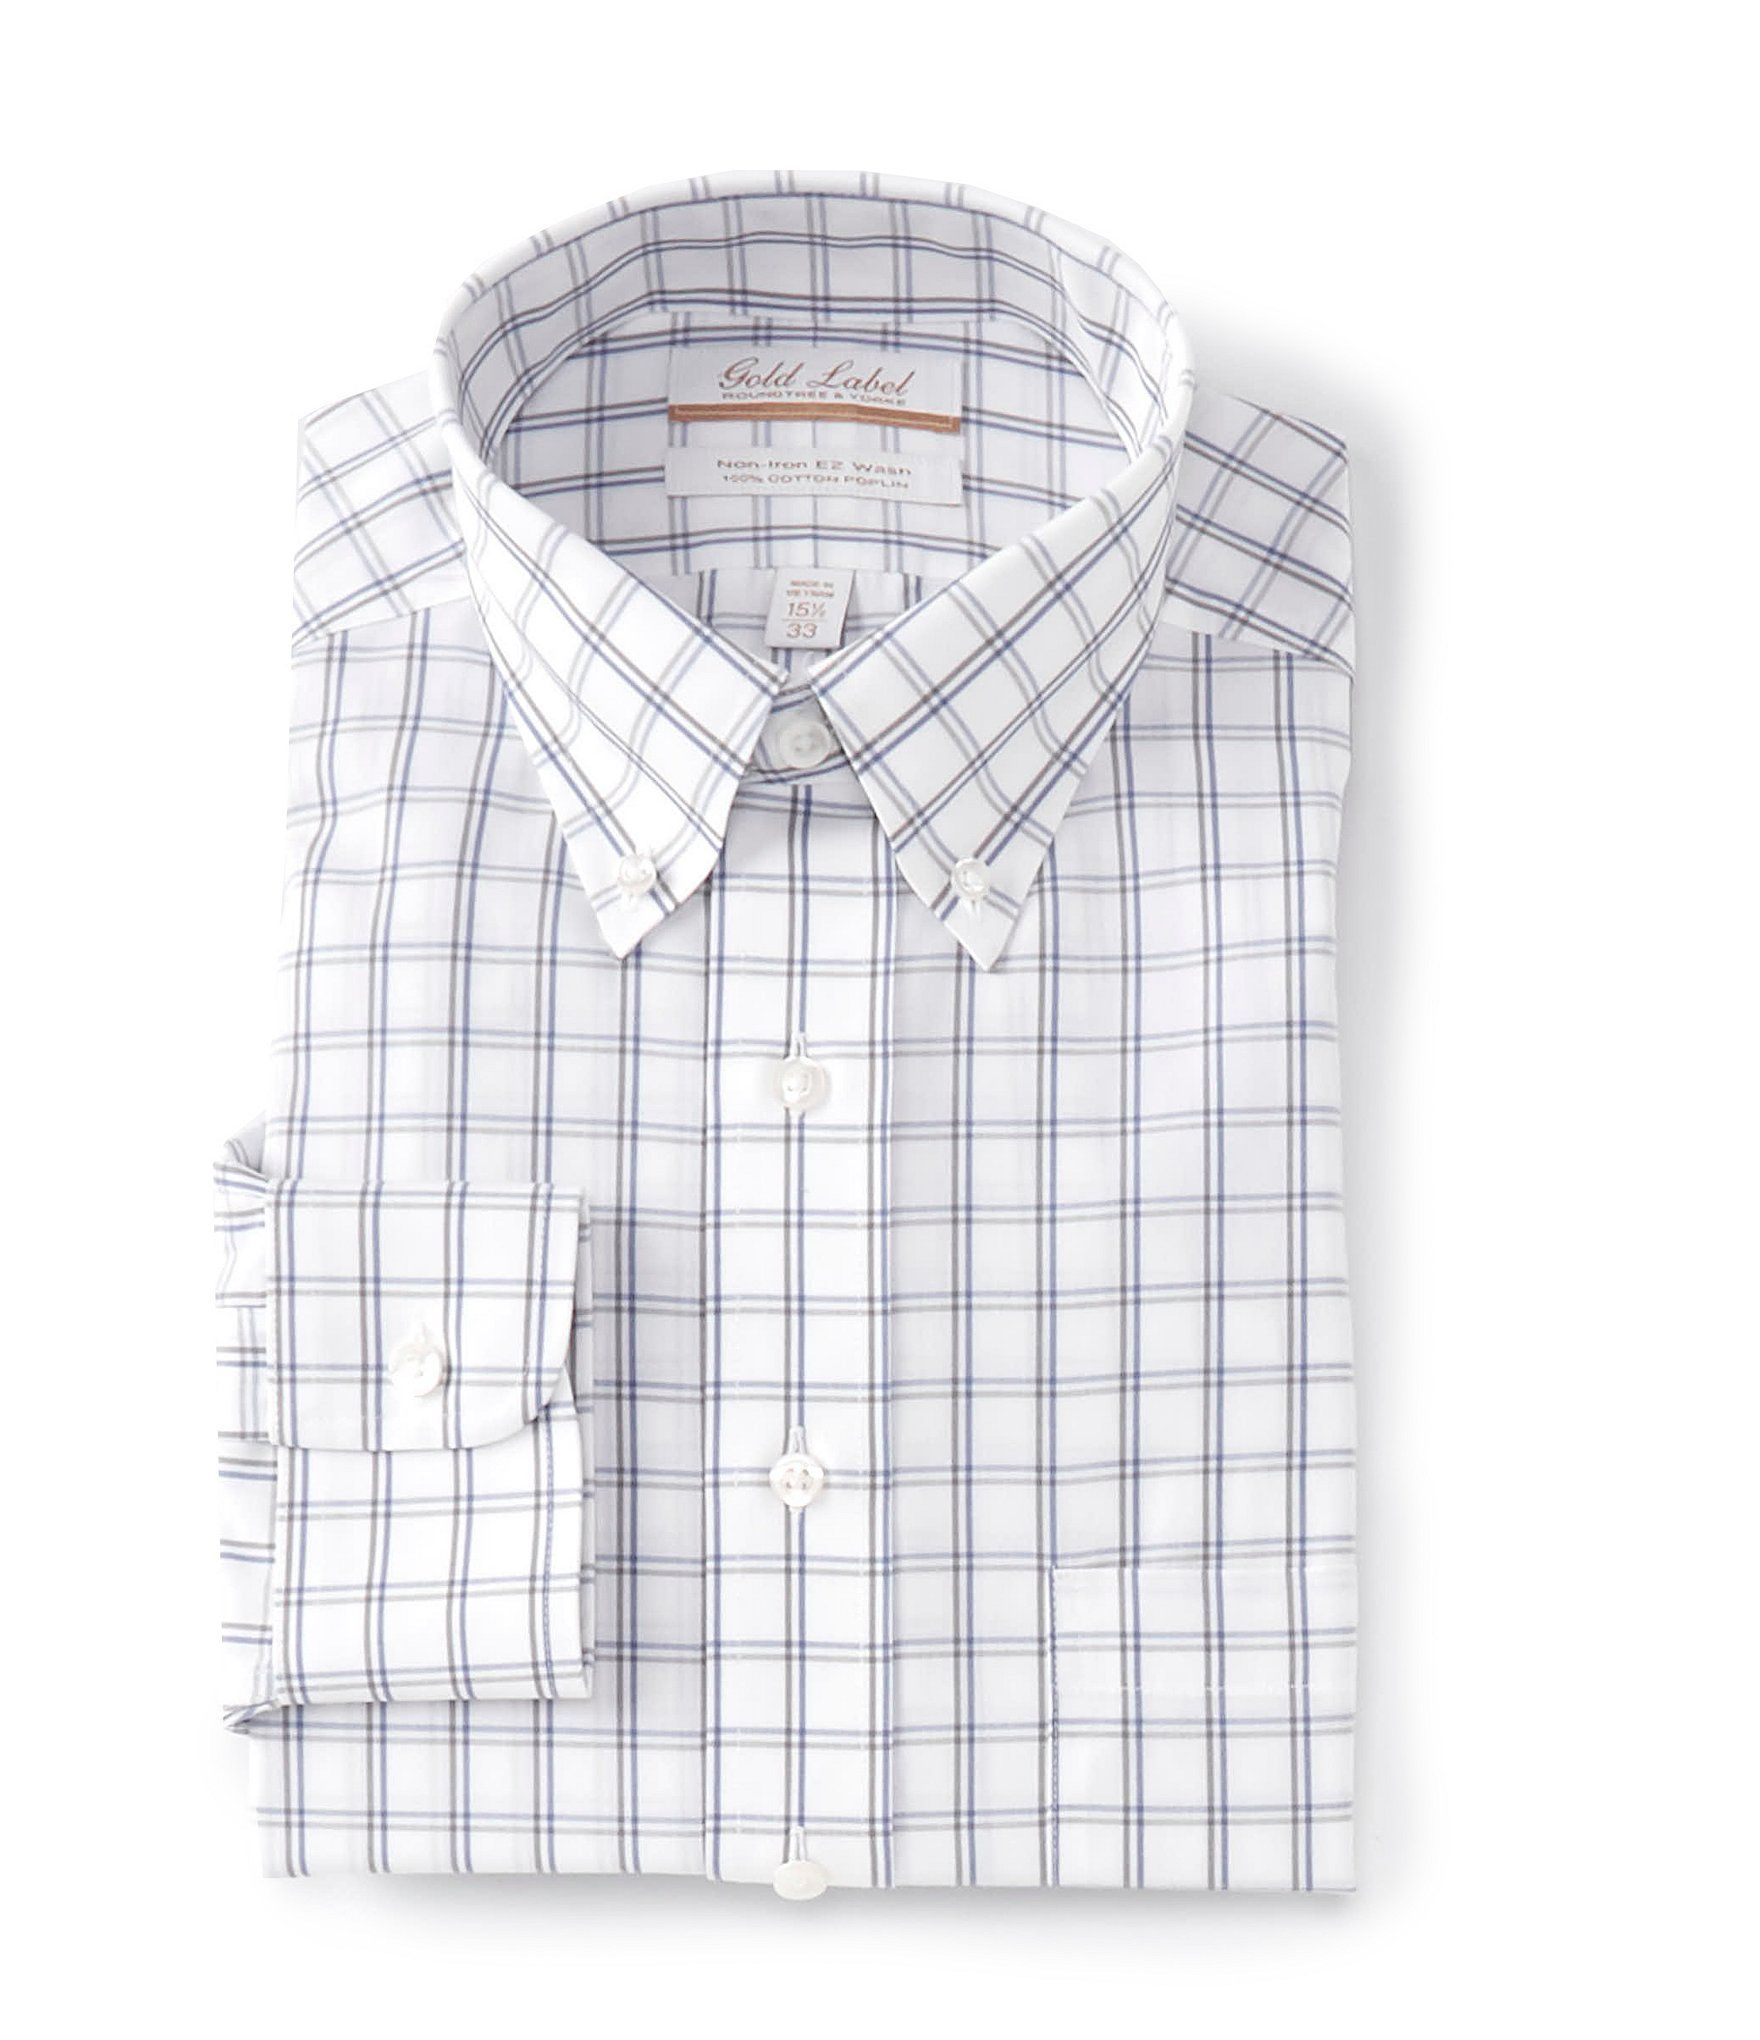 From Gold Label Roundtree & Yorke, this fitted button-down collar dress shirt features:Checked patternButton-down collarButton frontSingle patch pocketExact sleeve length for the perfect fitButton cuffsBack yoke with box pleatTaped shoulder and side seamsCurved hemWrinkle-free; no iron neededEasy Wash finish on cuffs and collar releases stains in washerCottonImported.